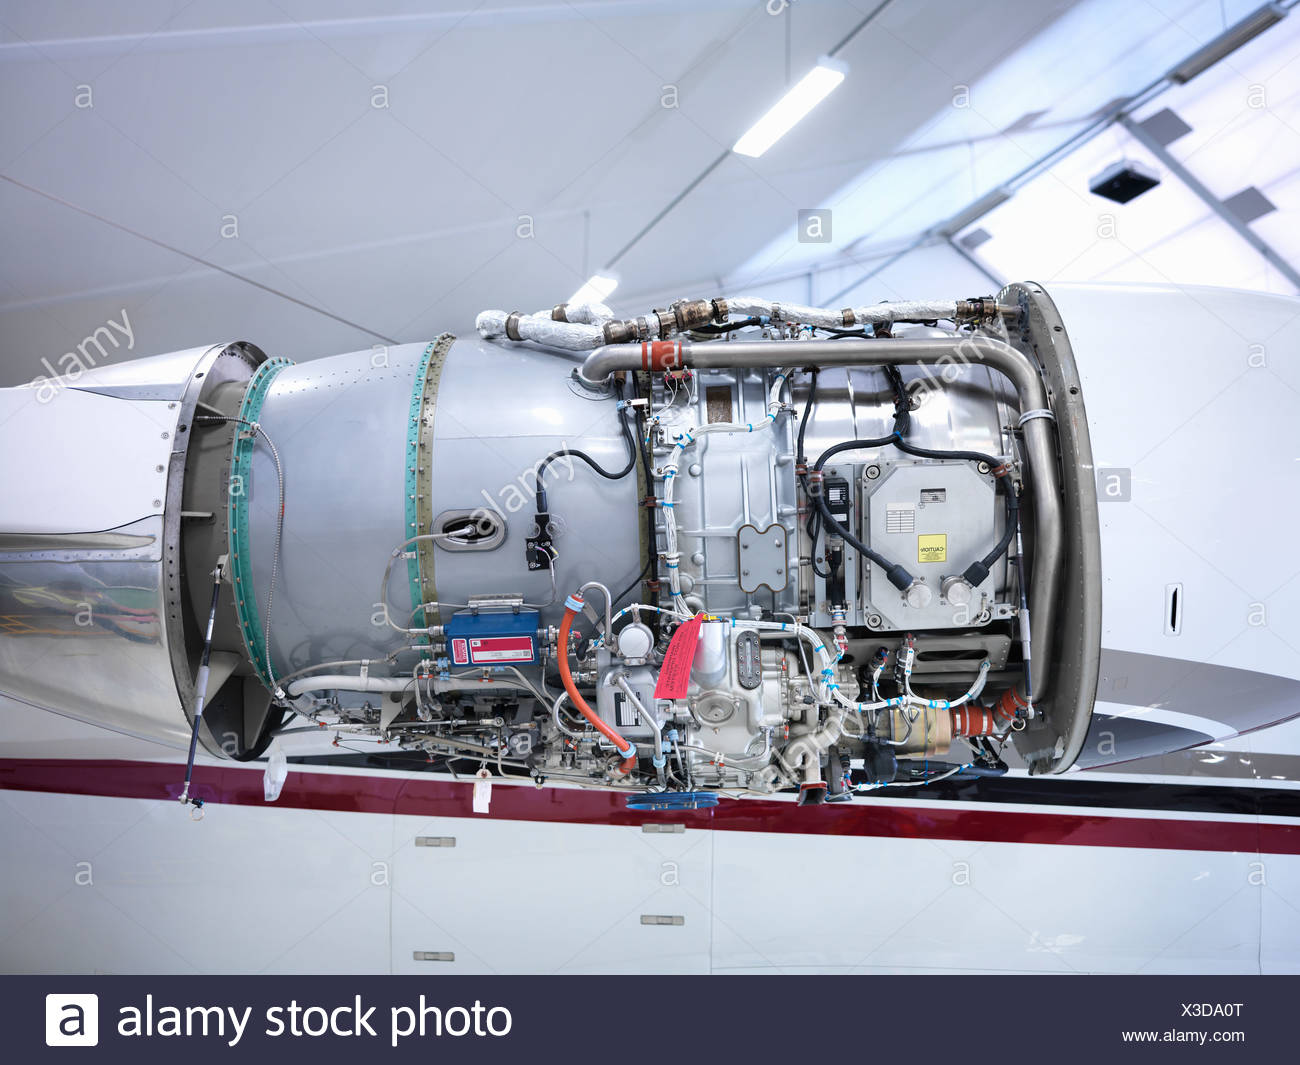 Jet engine in an aircraft hangar - Stock Image